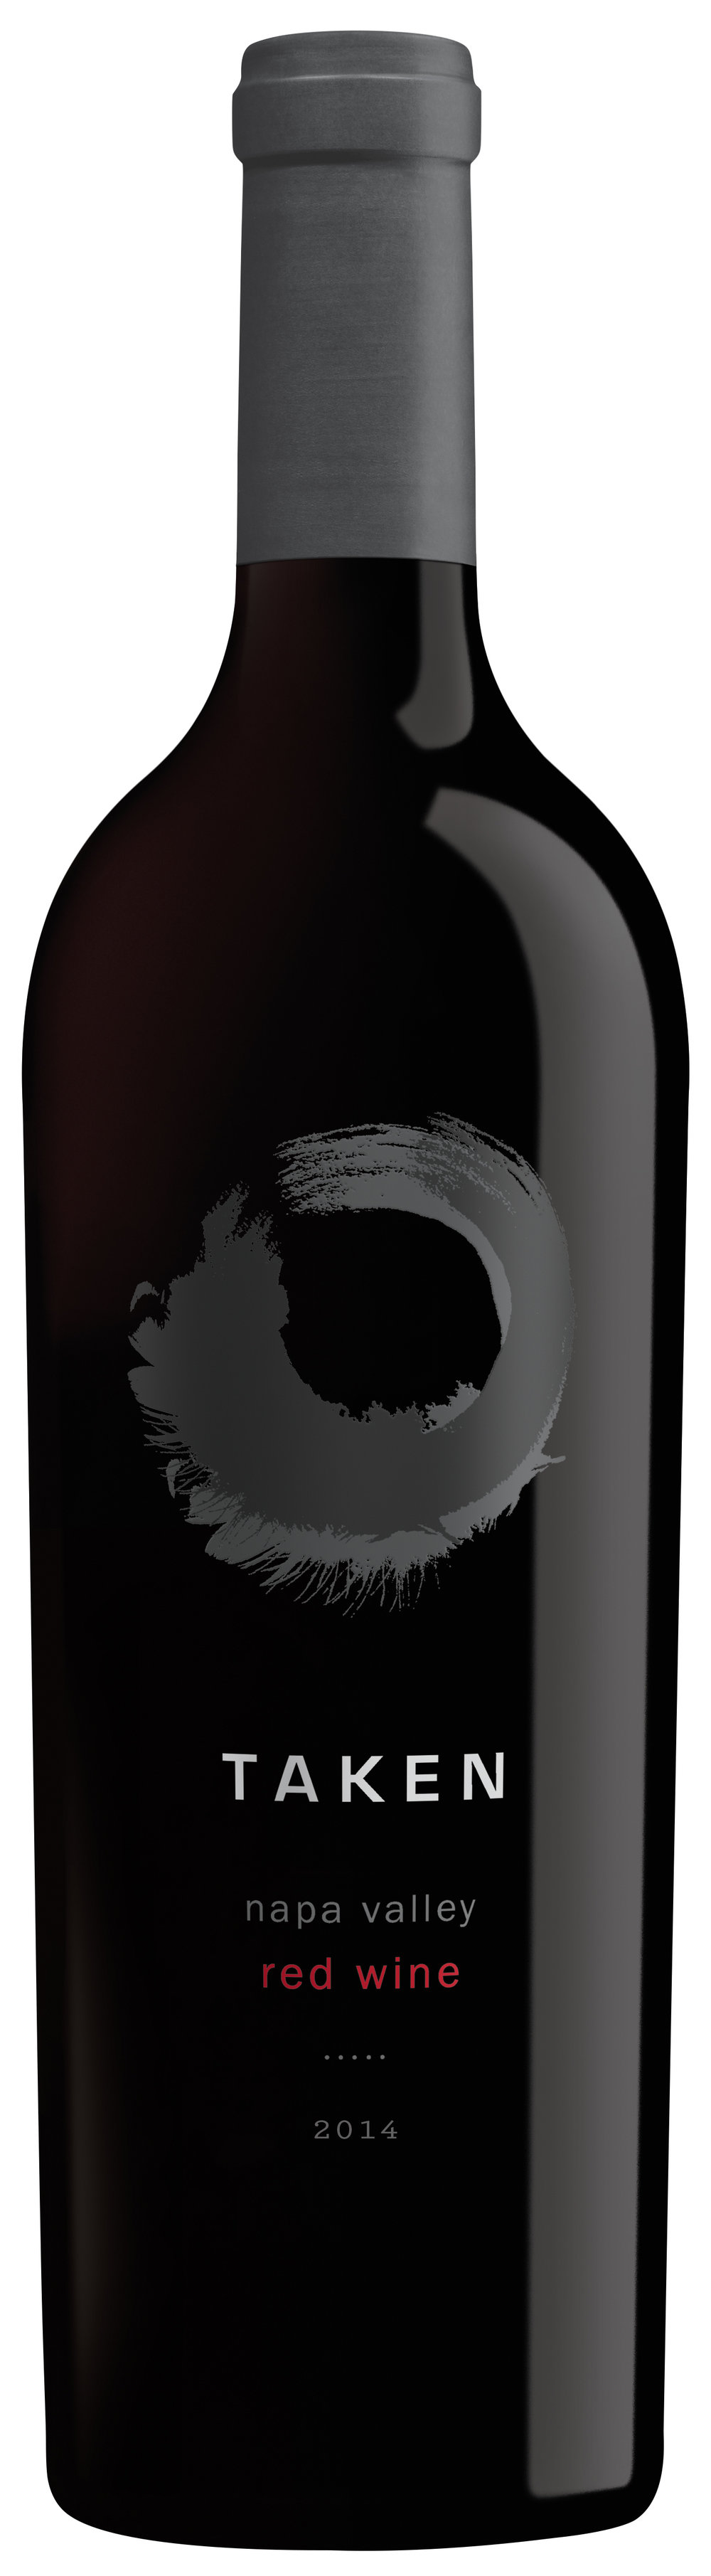 Taken 2014 Red Blend HI Res Bottle Shot.jpg